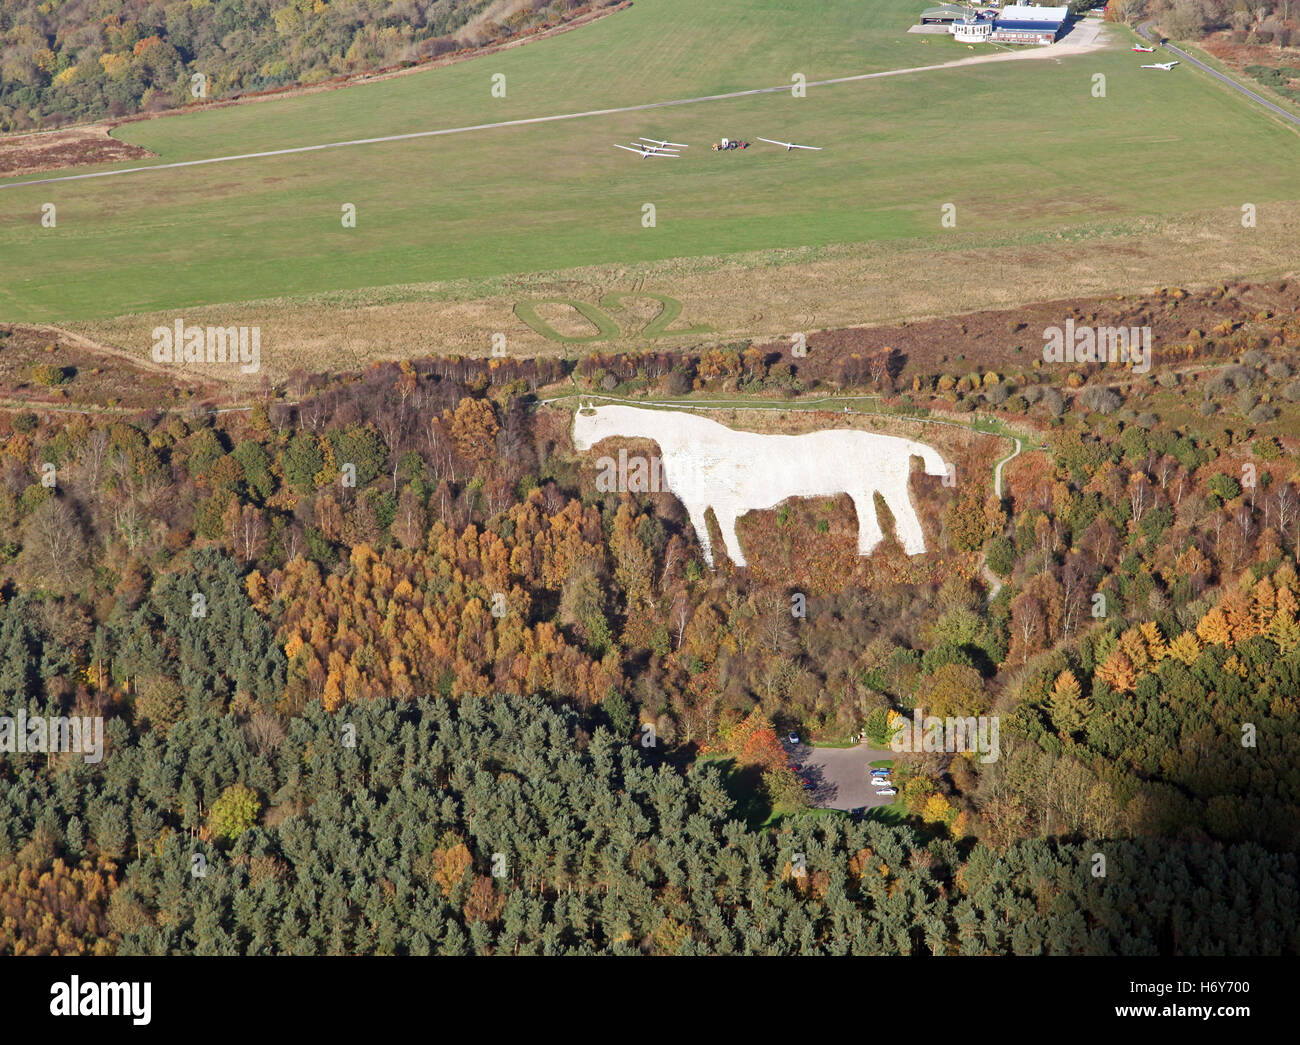 aerial view of Yorkshire Gliding Club at Sutton Bank & Kilburn White Horse, UK - Stock Image